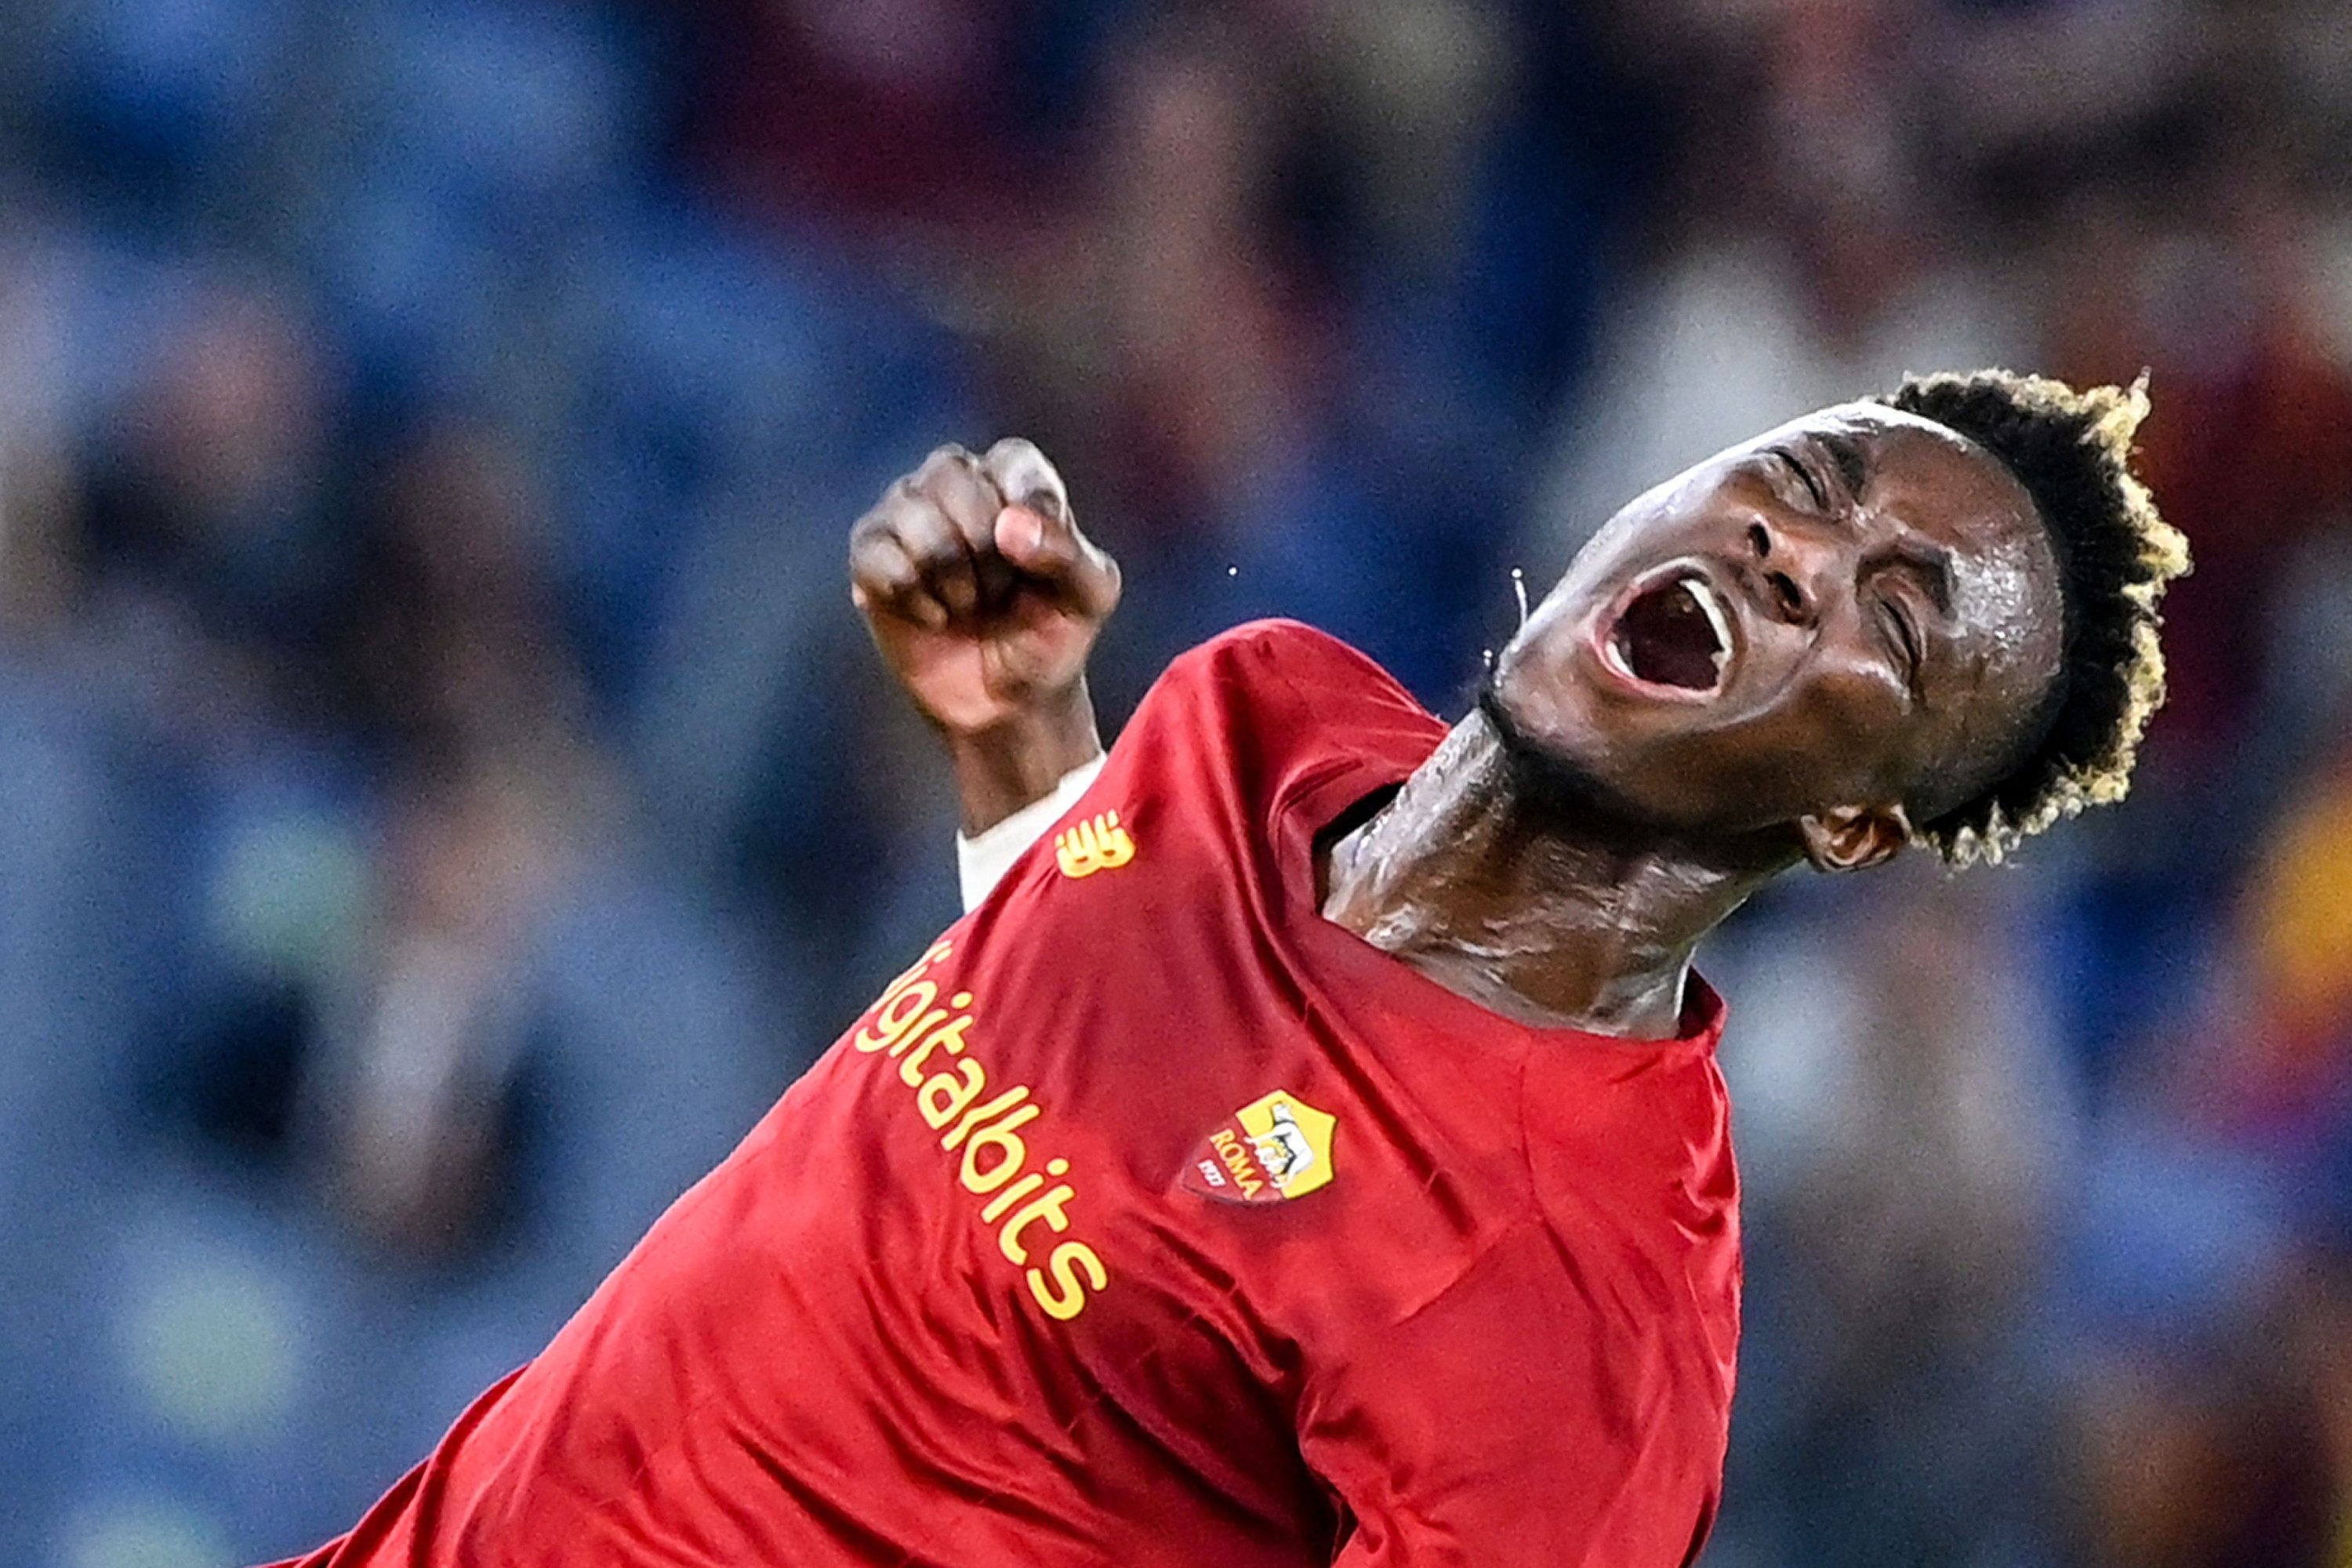 AS Roma forward Tammy Abraham celebrates after assisting a goal during a Serie A match against Fiorentina at the Olympic stadium in Rome, Italy, Aug. 22, 2021. (AFP Photo)